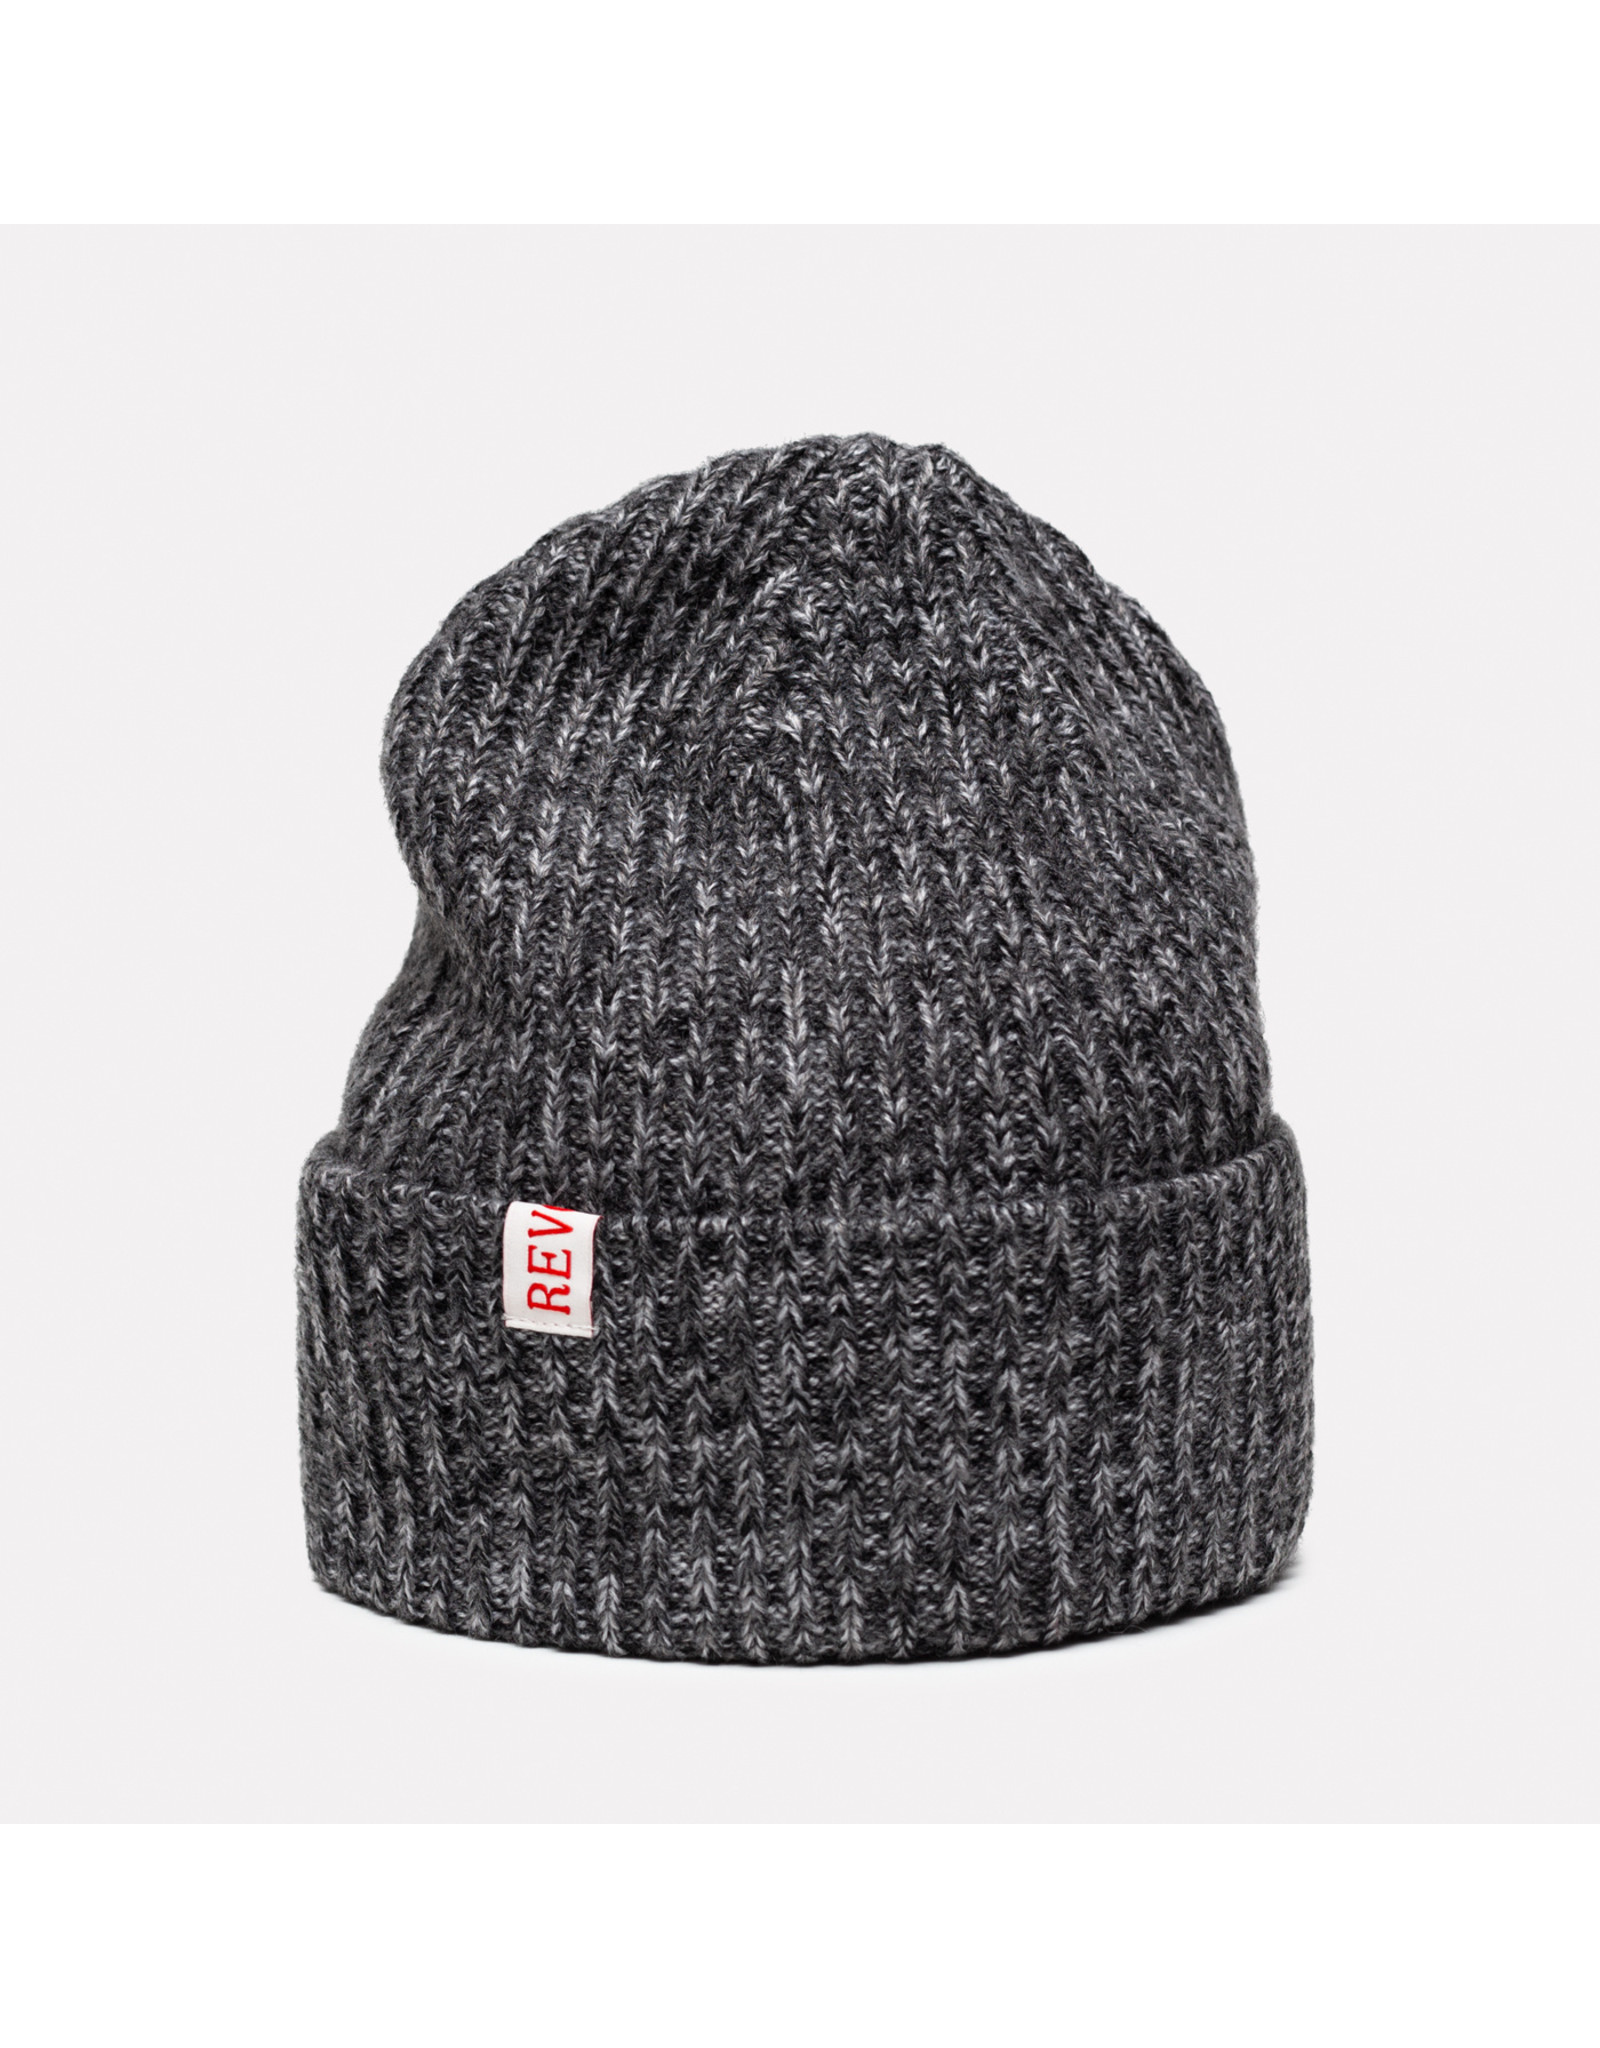 RVLT 9316 Structured Beanie - 2 Colors